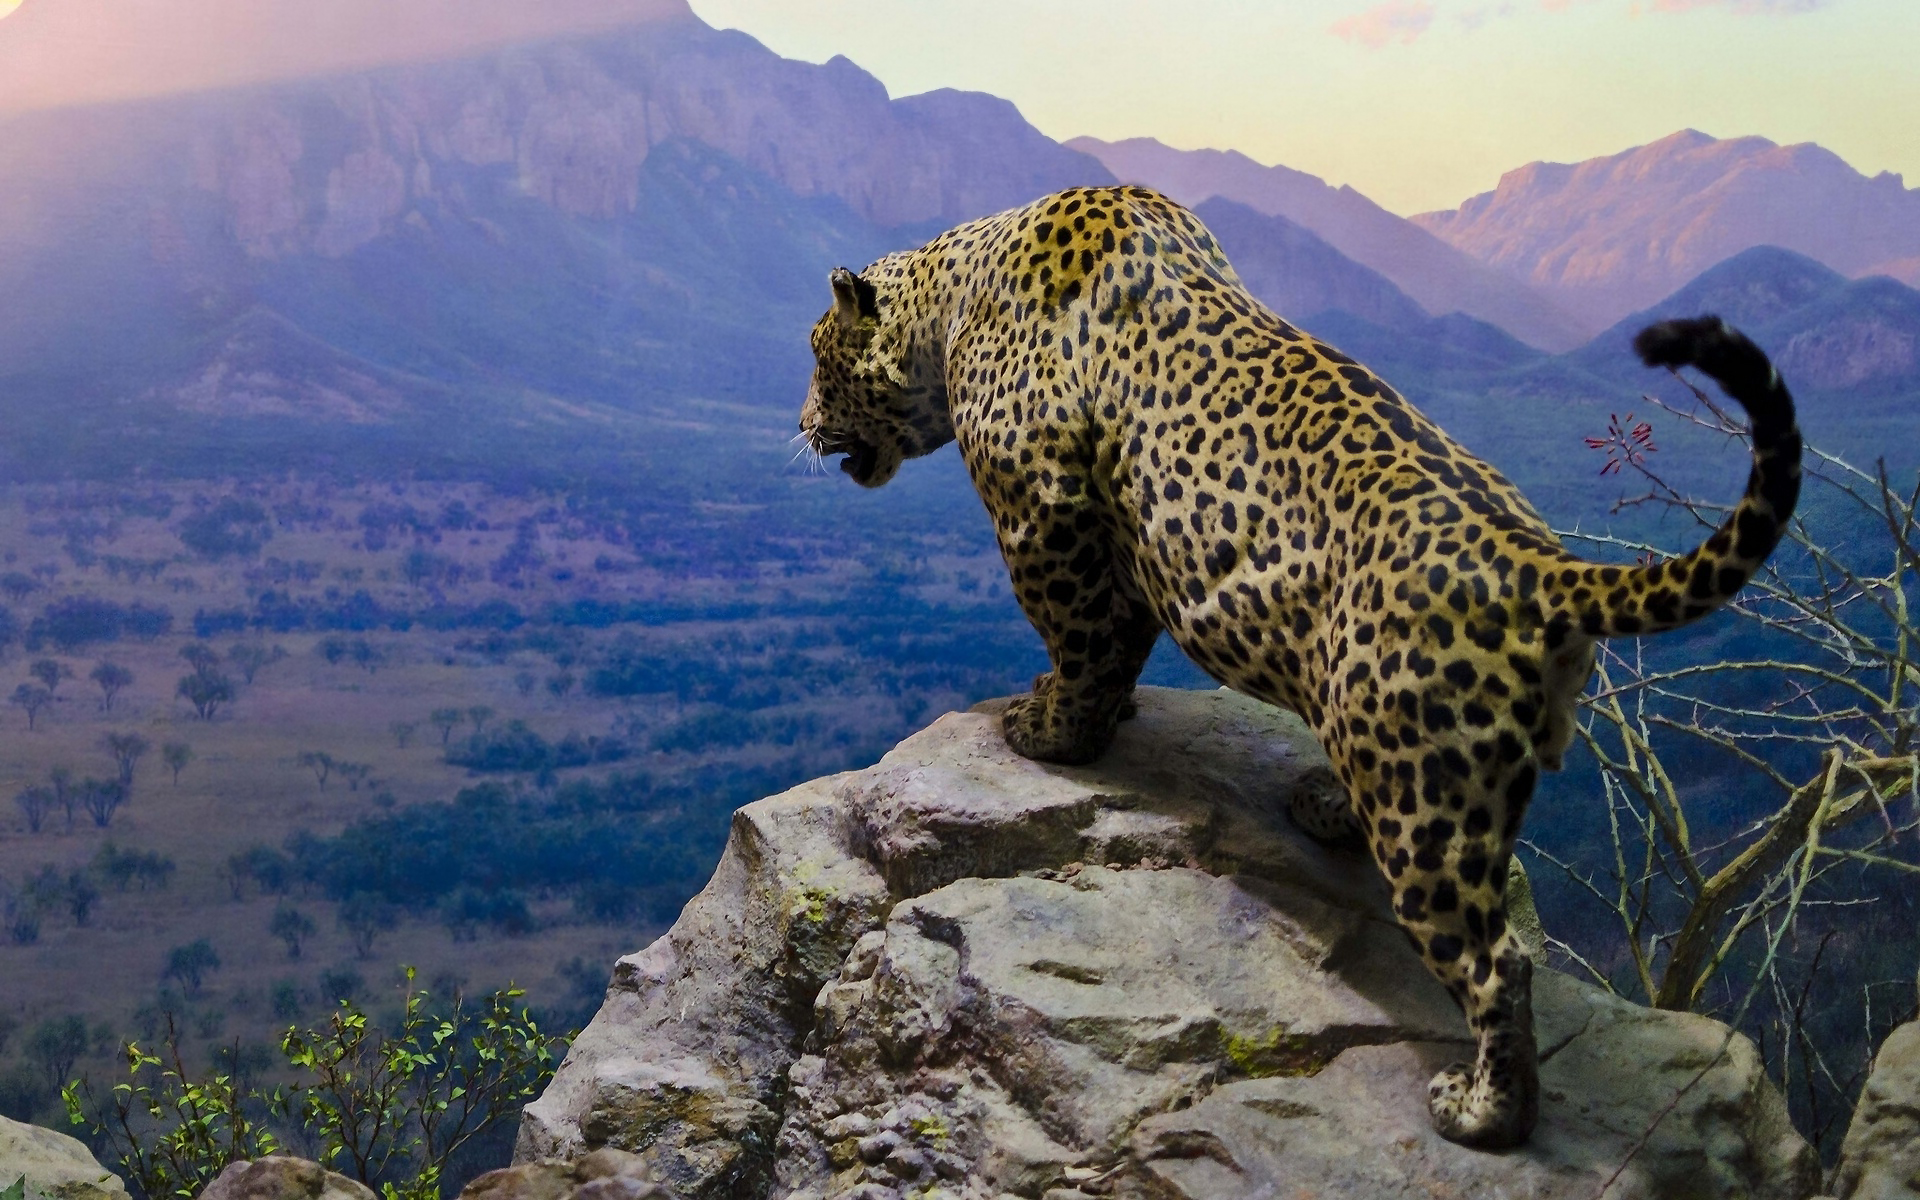 Jaguar images hd desktop wallpapers 4k hd - Jaguar animal hd wallpapers ...